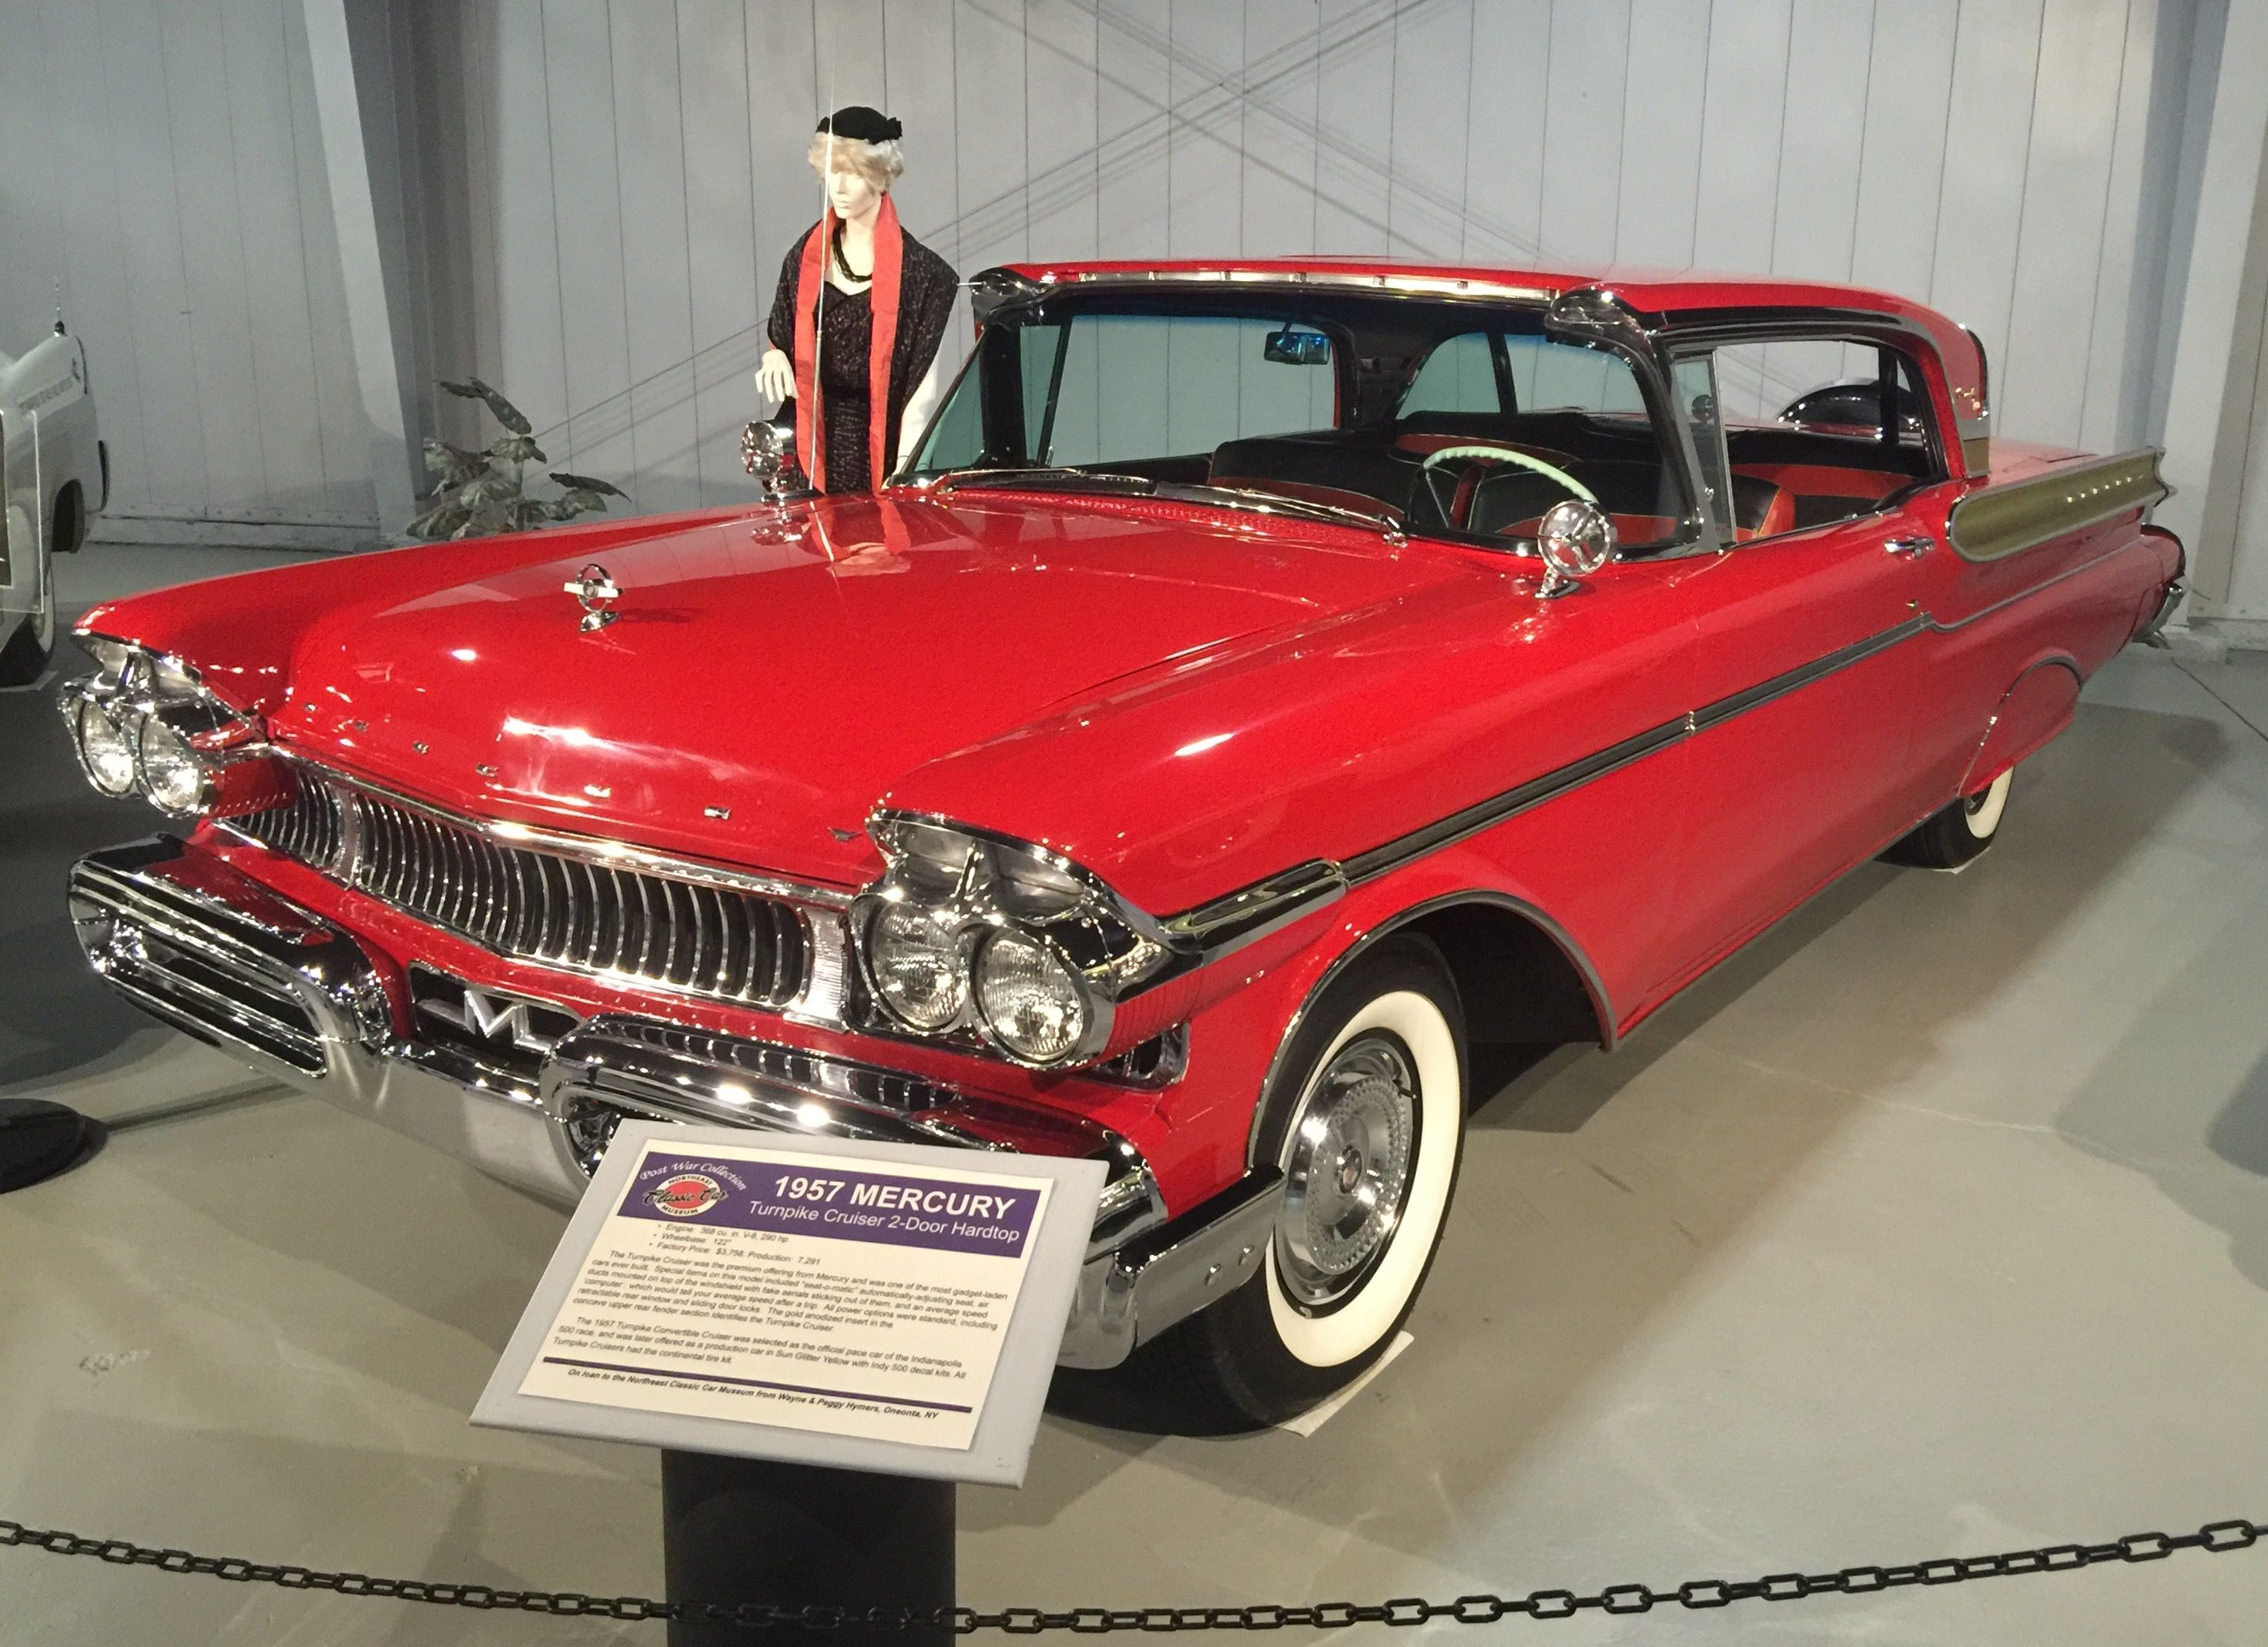 1957 mercury turnpike cruiser northeast classic car museum norwich ny mercury cars classic cars lincoln cars pinterest